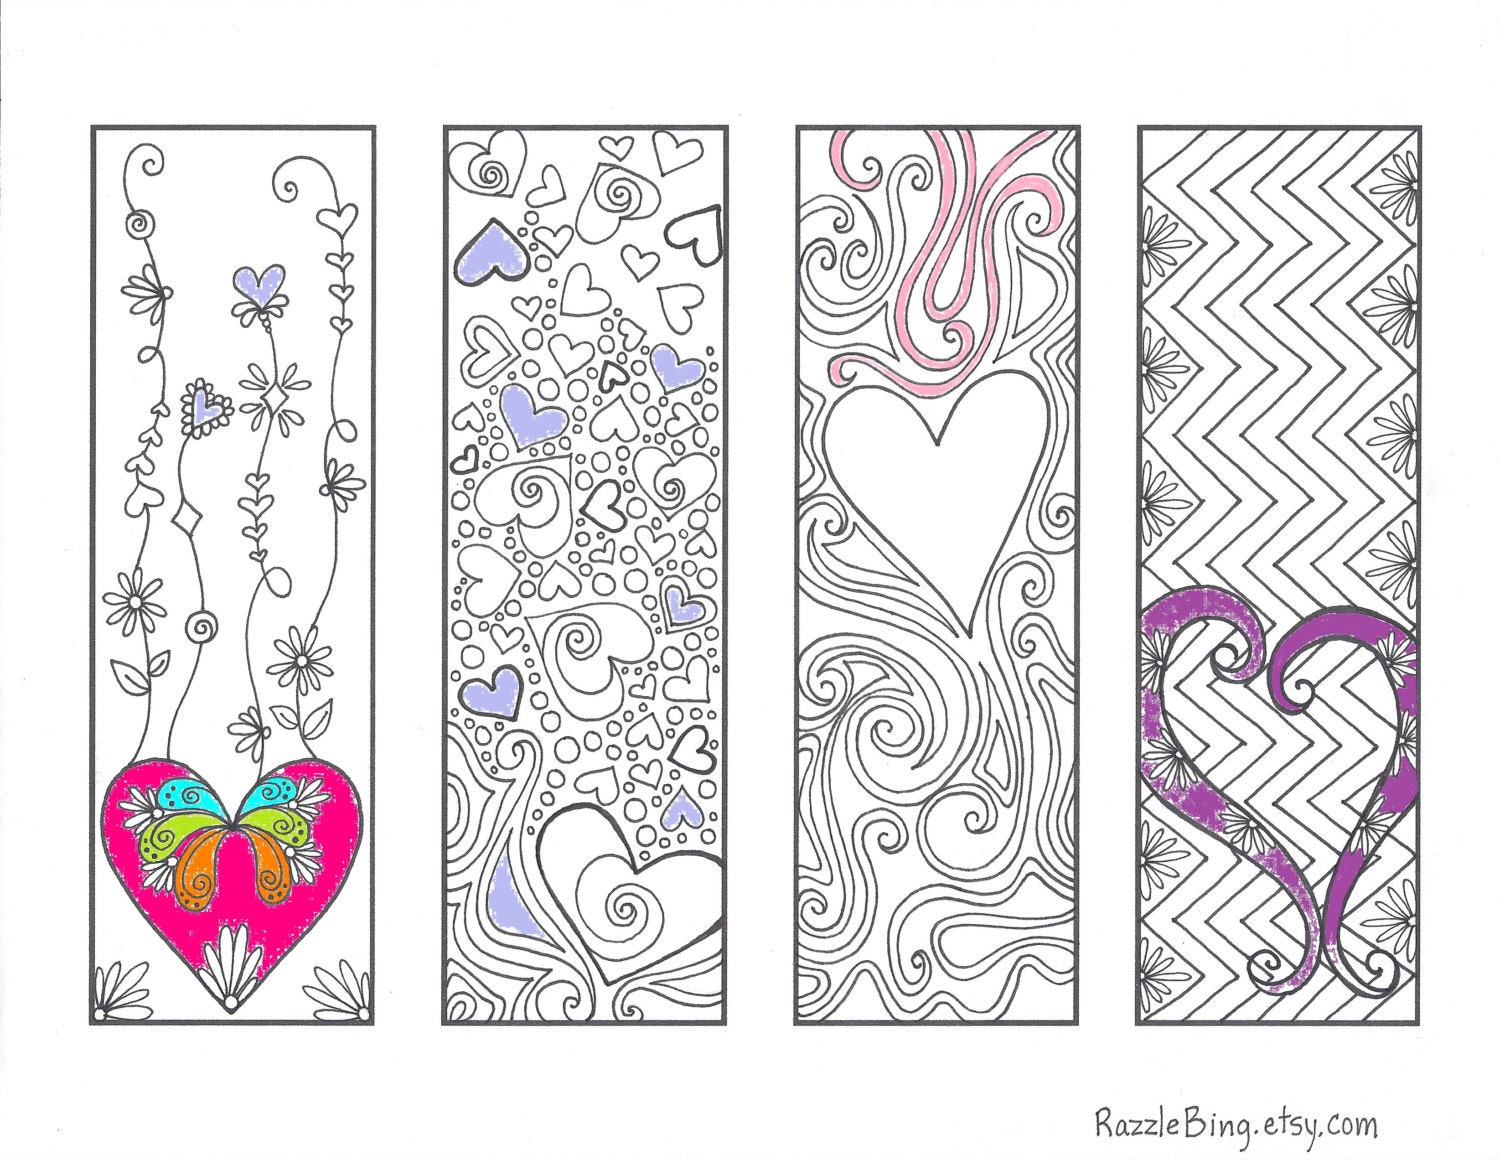 valentine bookmarks to color : Coloring Bookmark Diy Bookmark Printable Coloring Page Zentangle Inspired Valentines Day Love Of Hearts Zendoodle